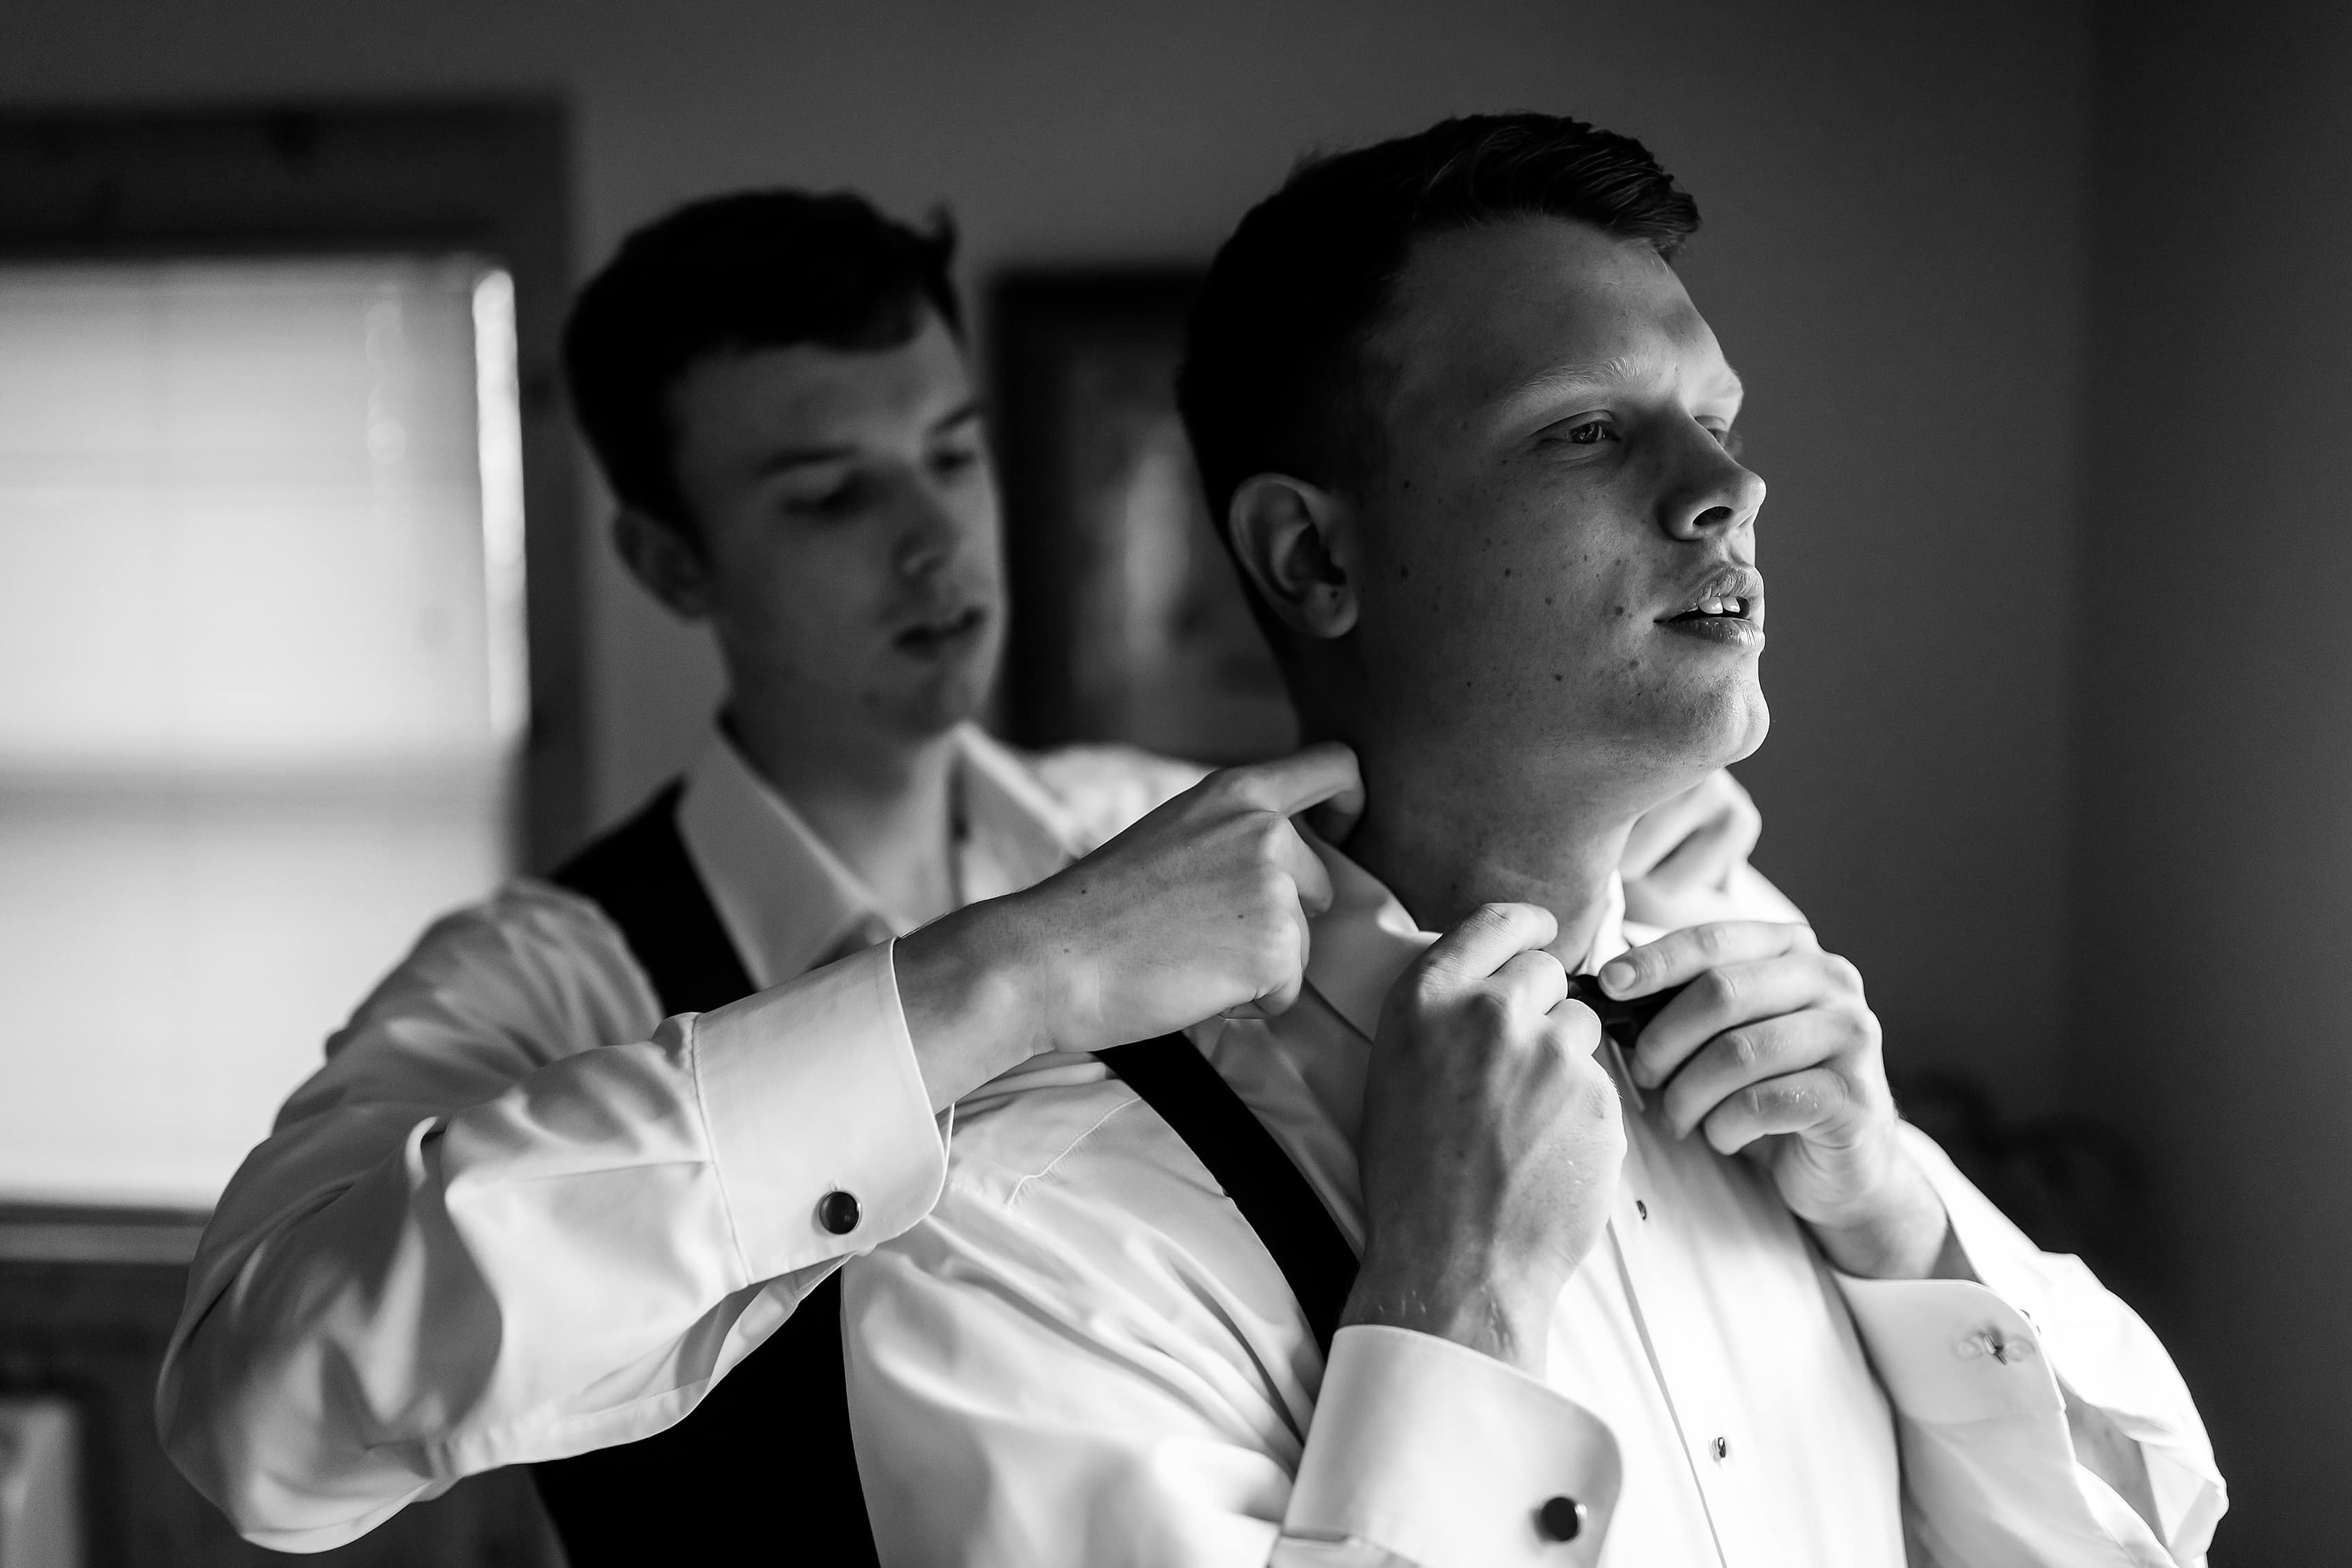 Best man helps groom with tie while getting ready for wedding